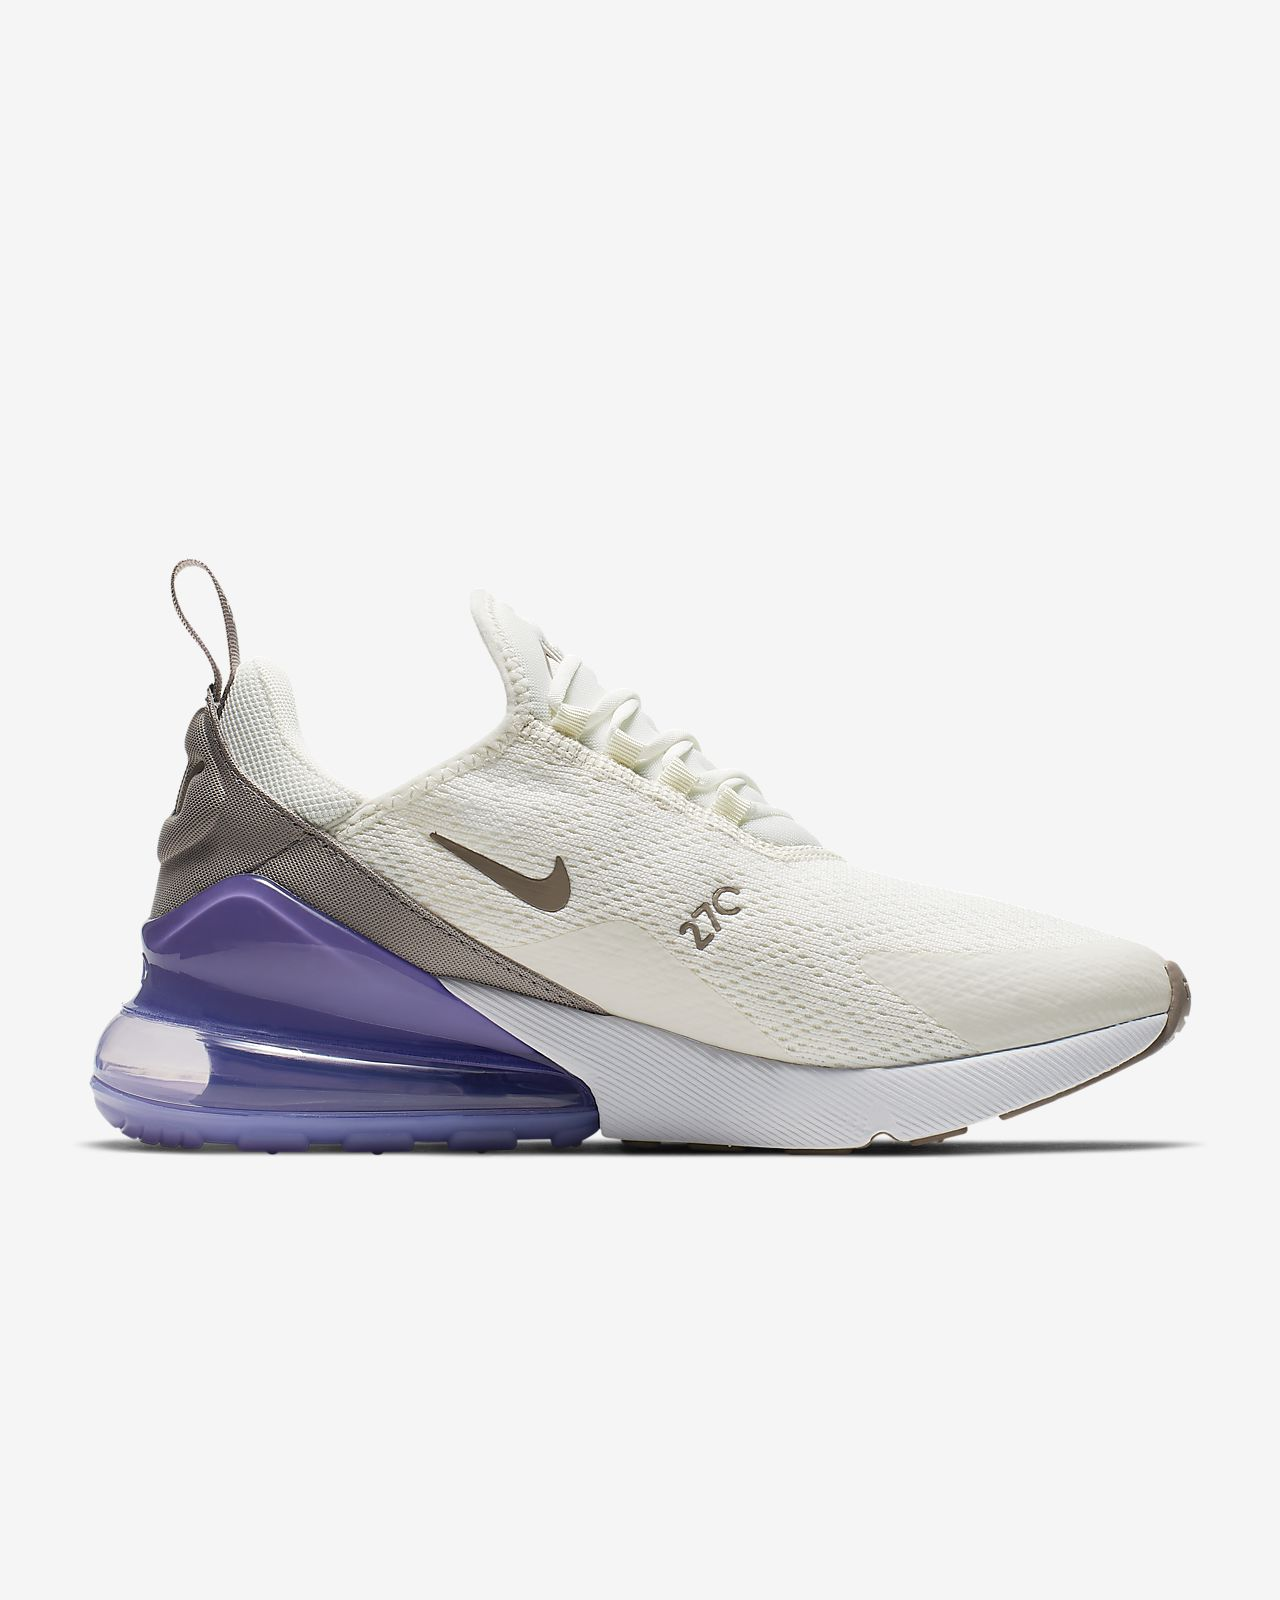 save off 17f2c 56a7d Low Resolution Nike Air Max 270 Women s Shoe Nike Air Max 270 Women s Shoe